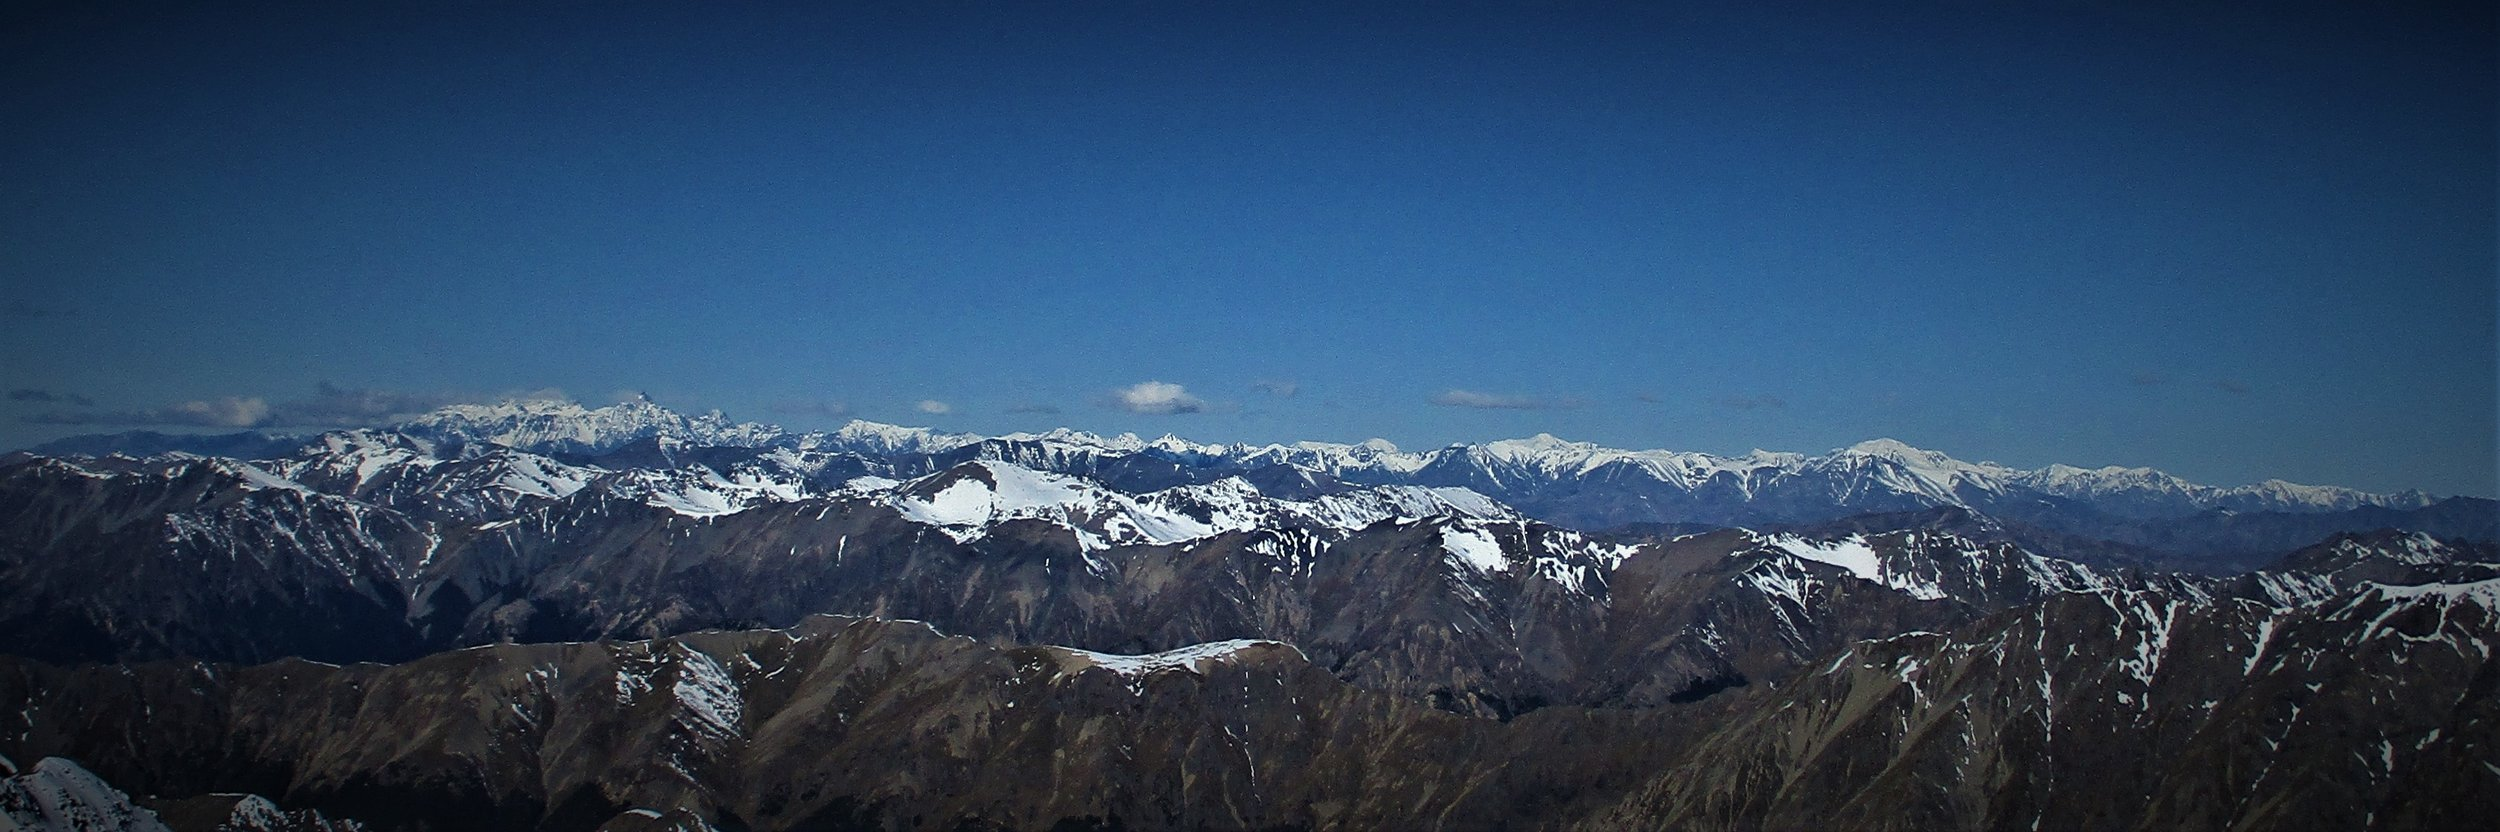 2152 m is at the center of the Northern area of the Southern alps and the views were stunning. Here the entire Inland and Seaward Kaikoura mountains in plan view to the East